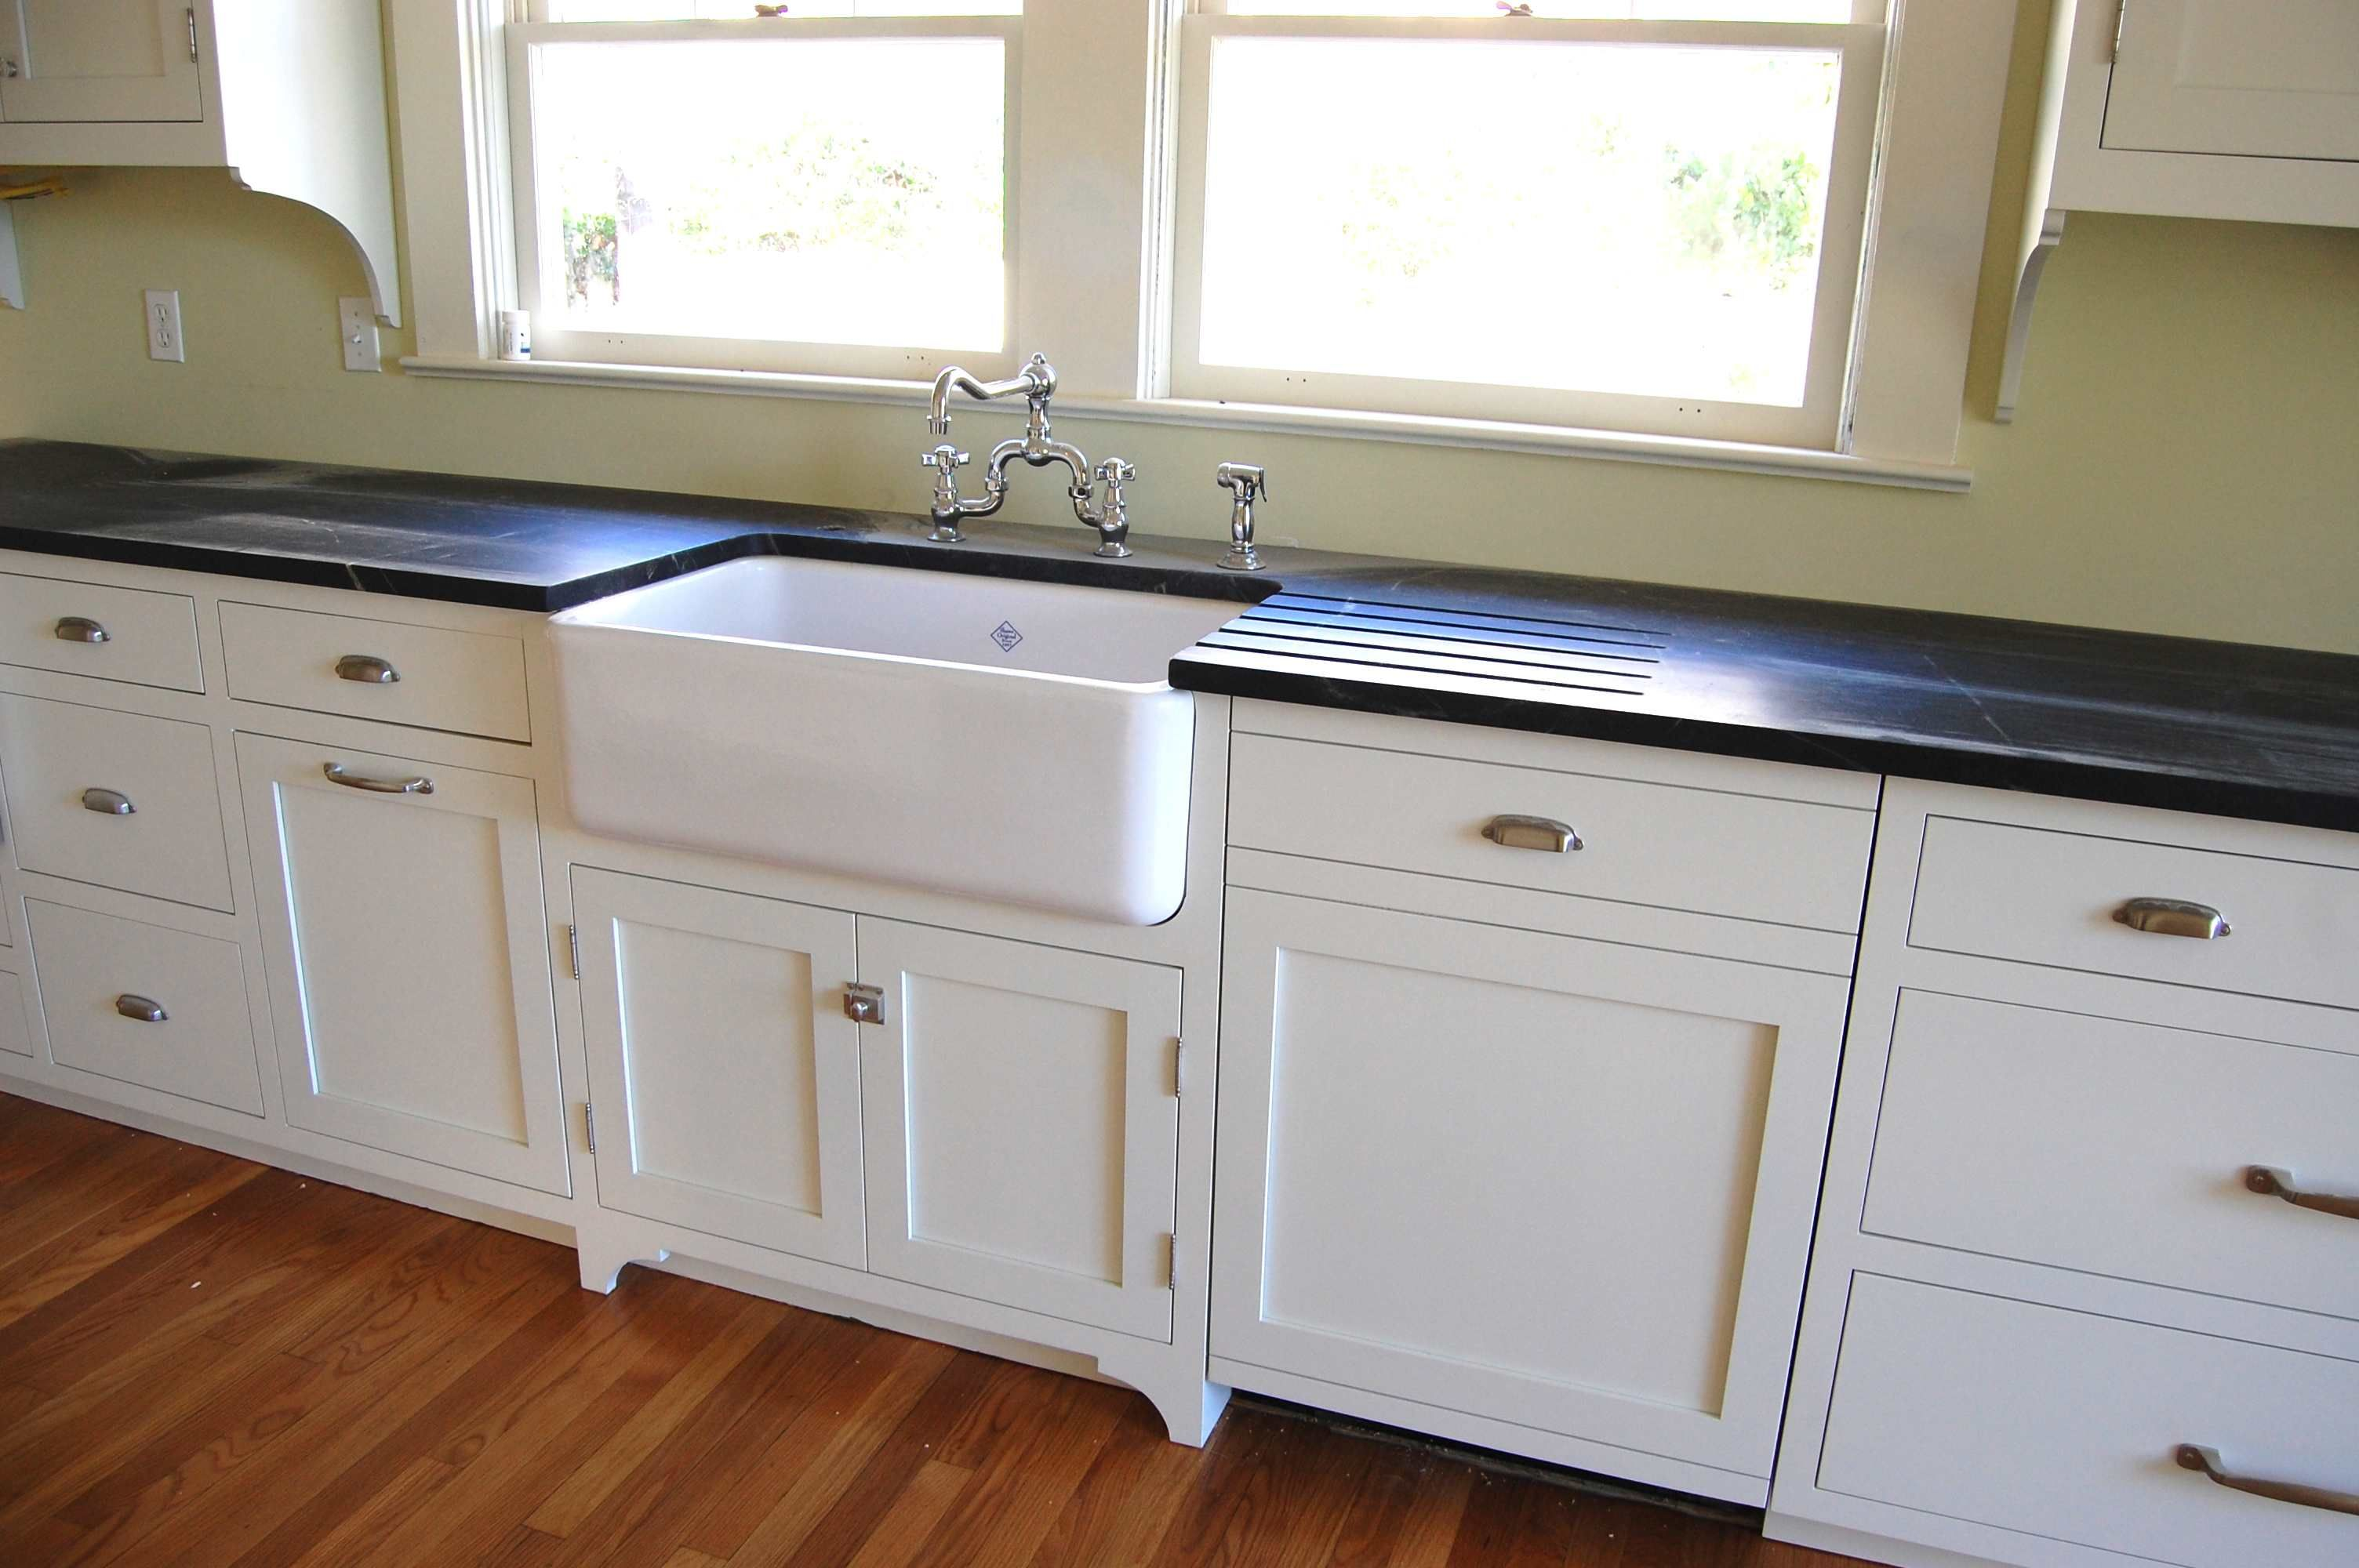 fabulous fabulously cottages recent custom colors paint finishes pieces furniture is stay here cottage and to